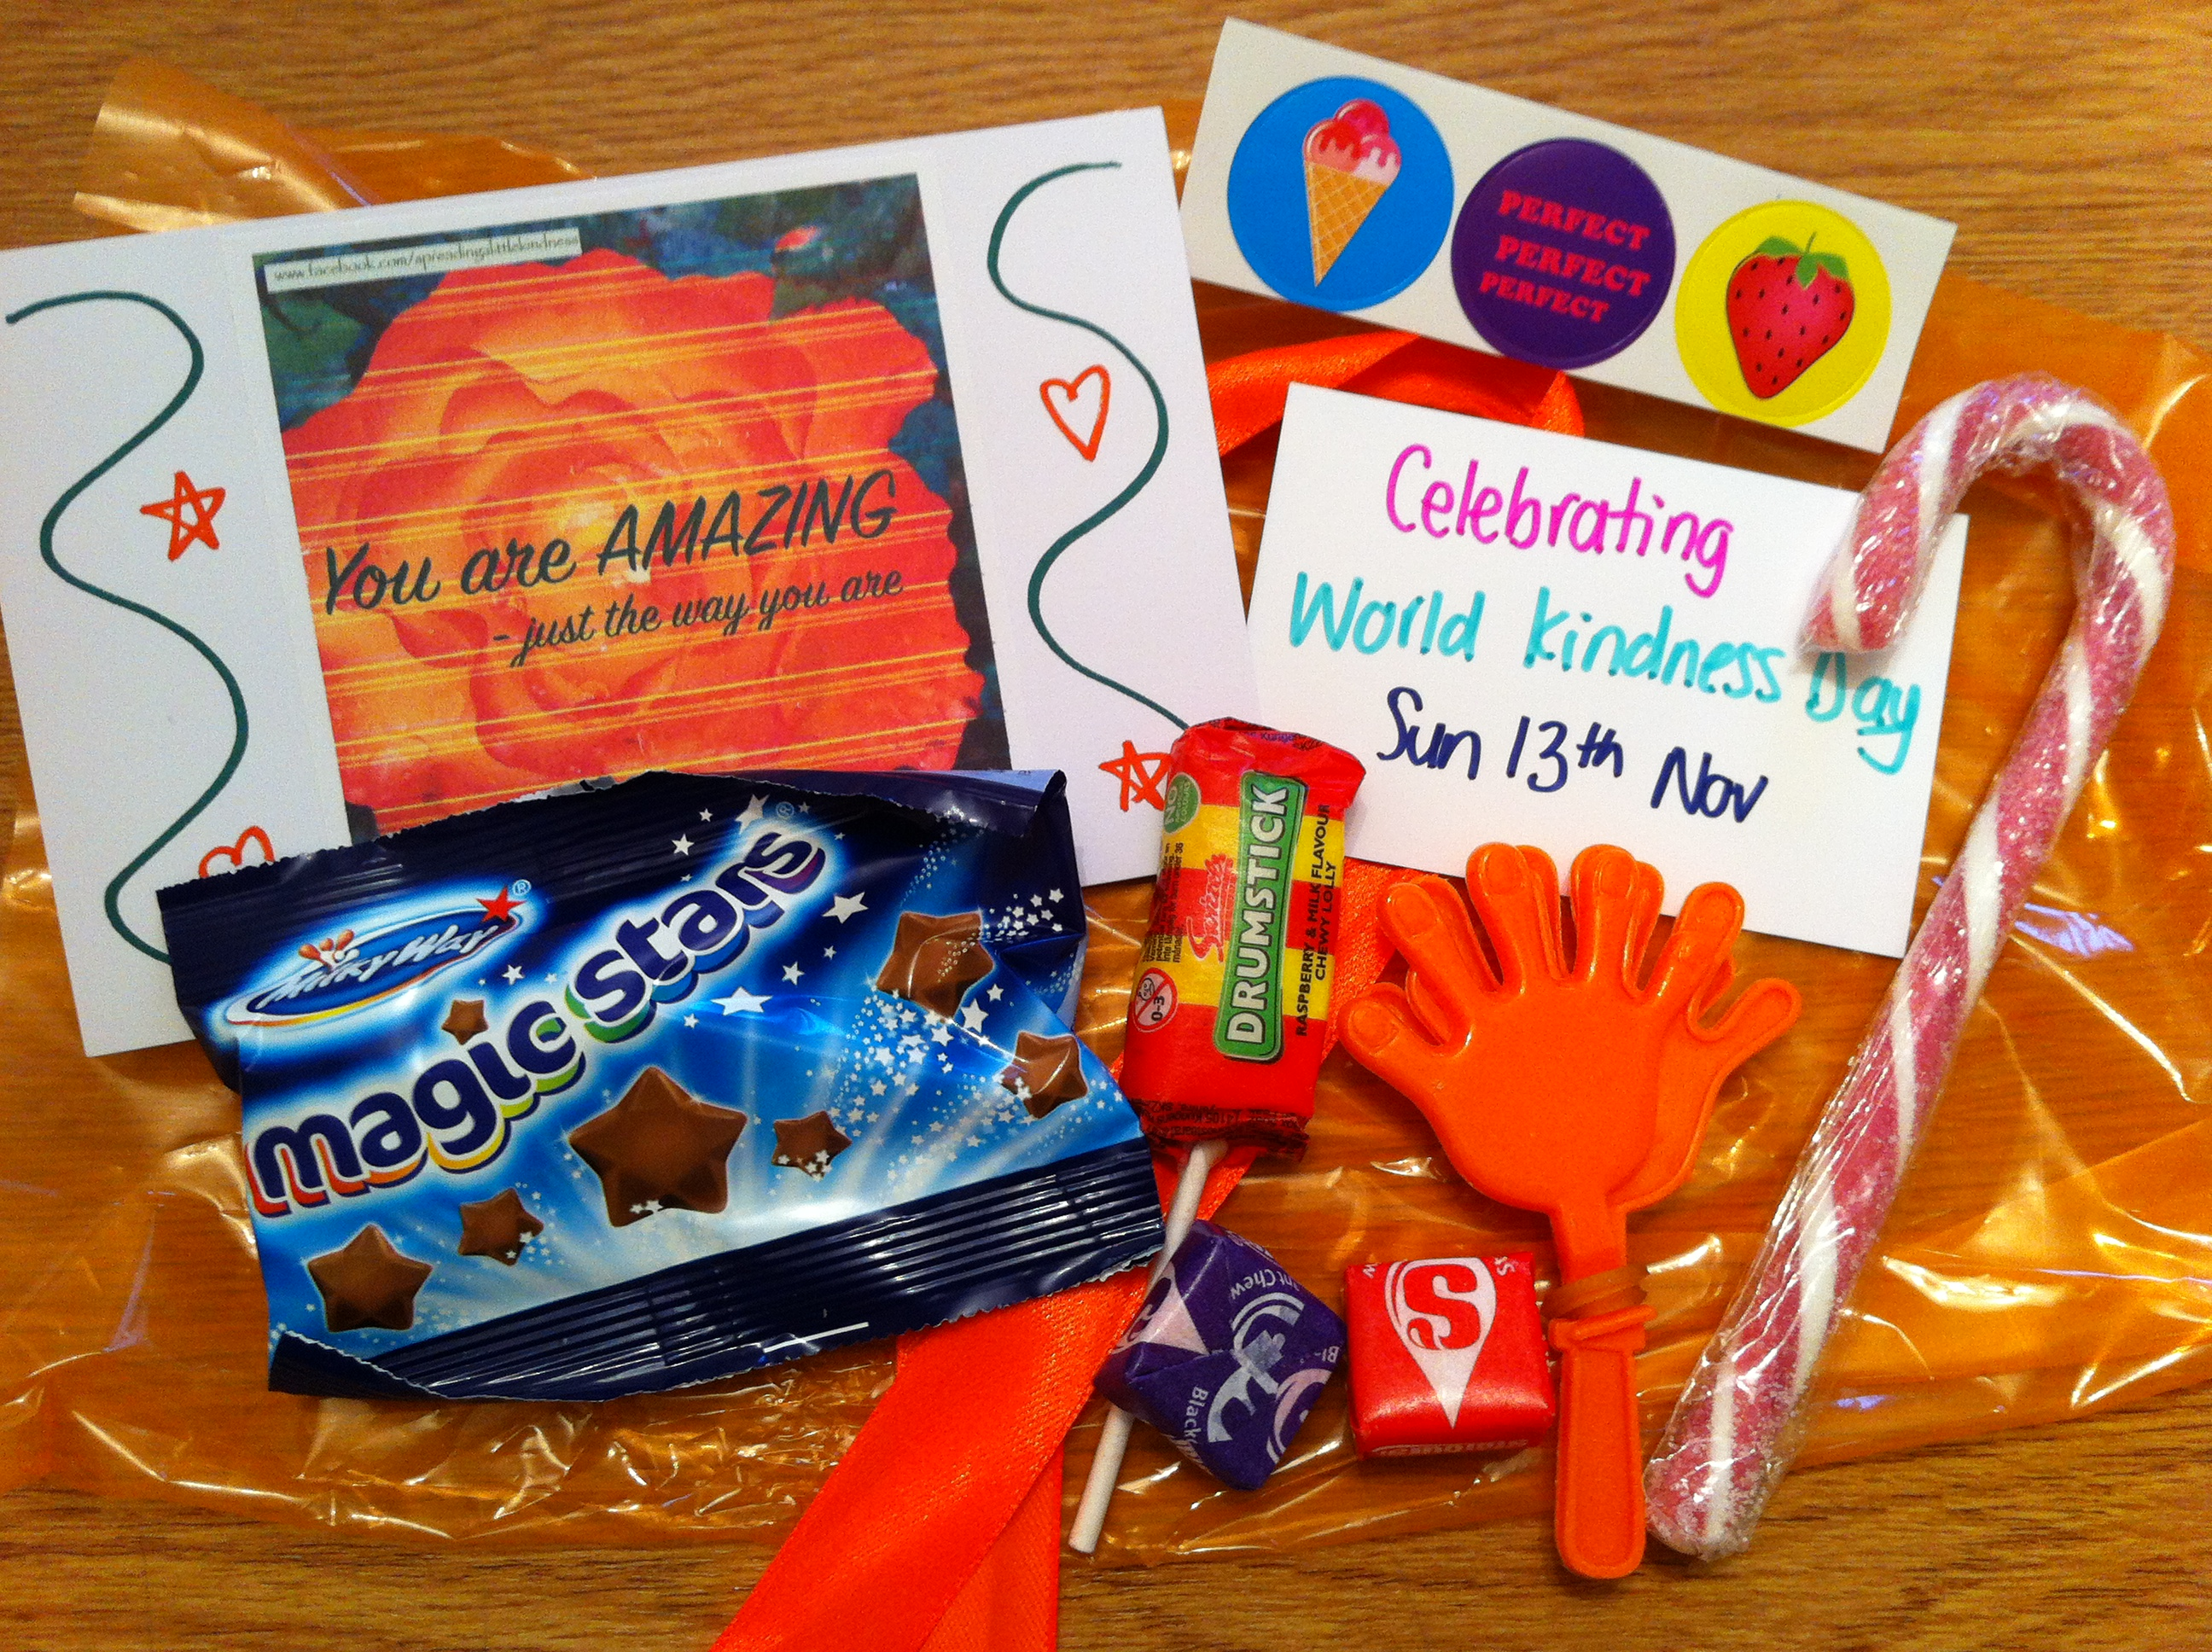 World Kindness Day Goody Bag contents